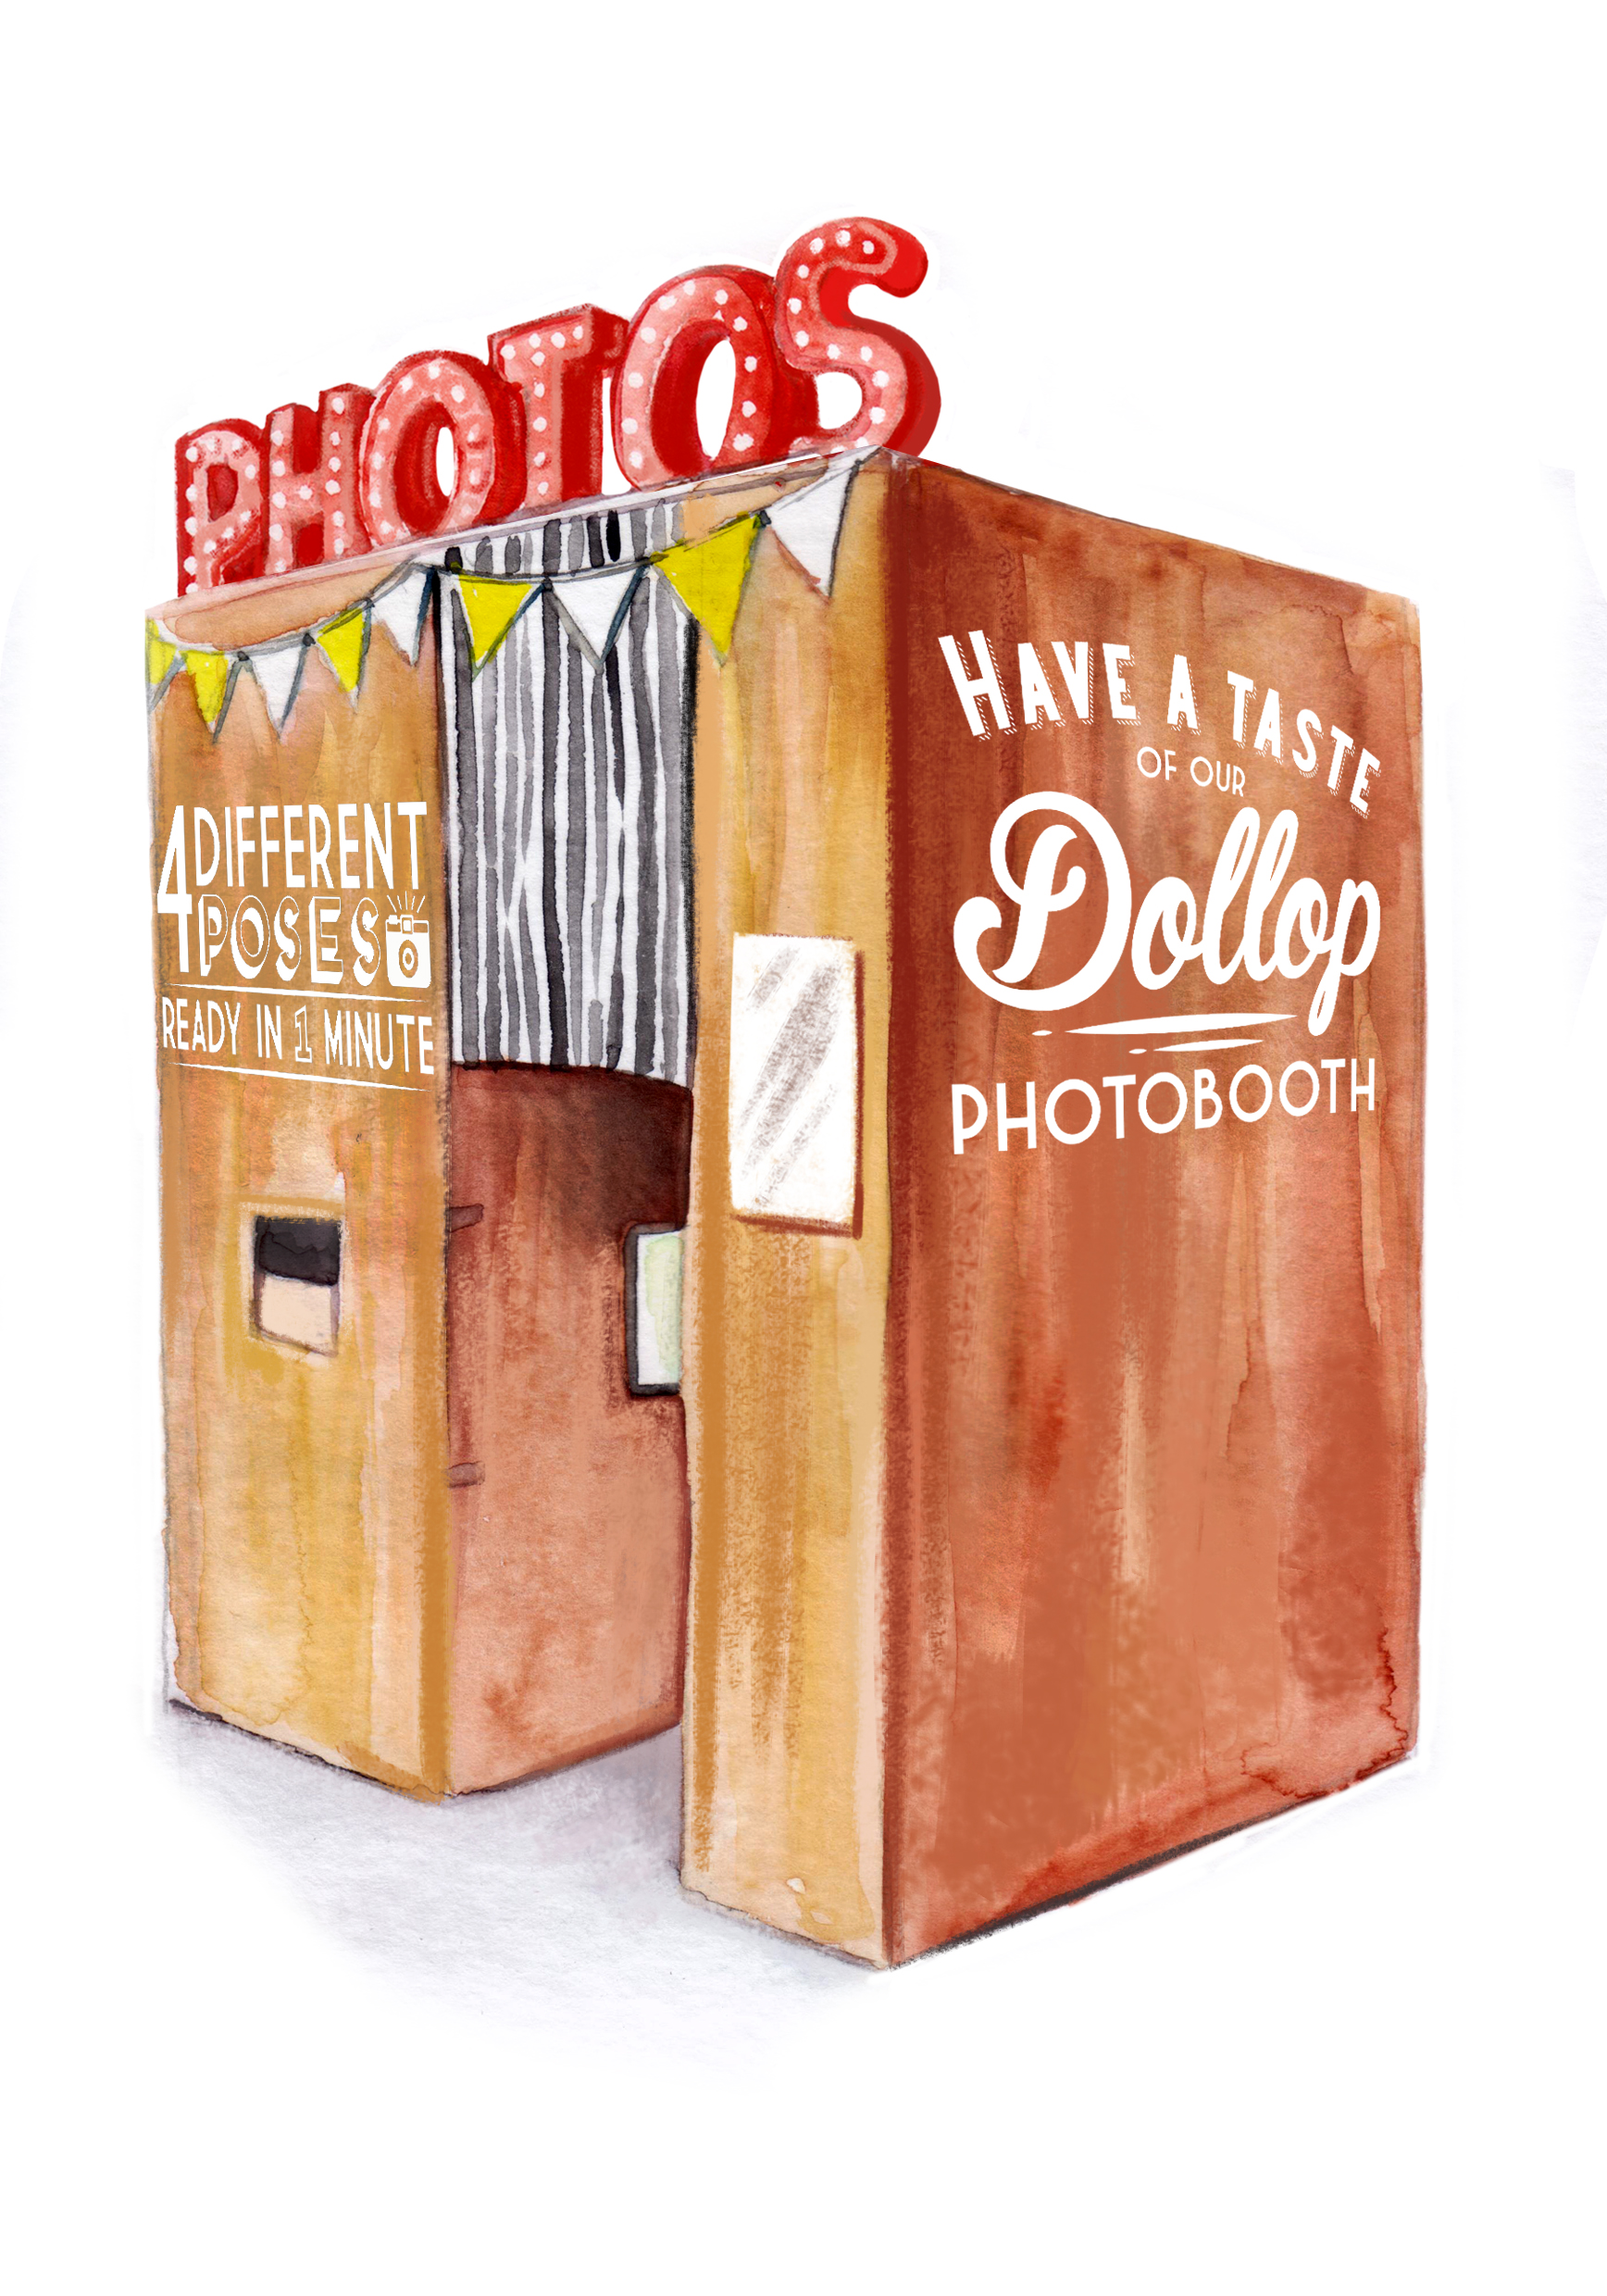 Dollop Photobooth